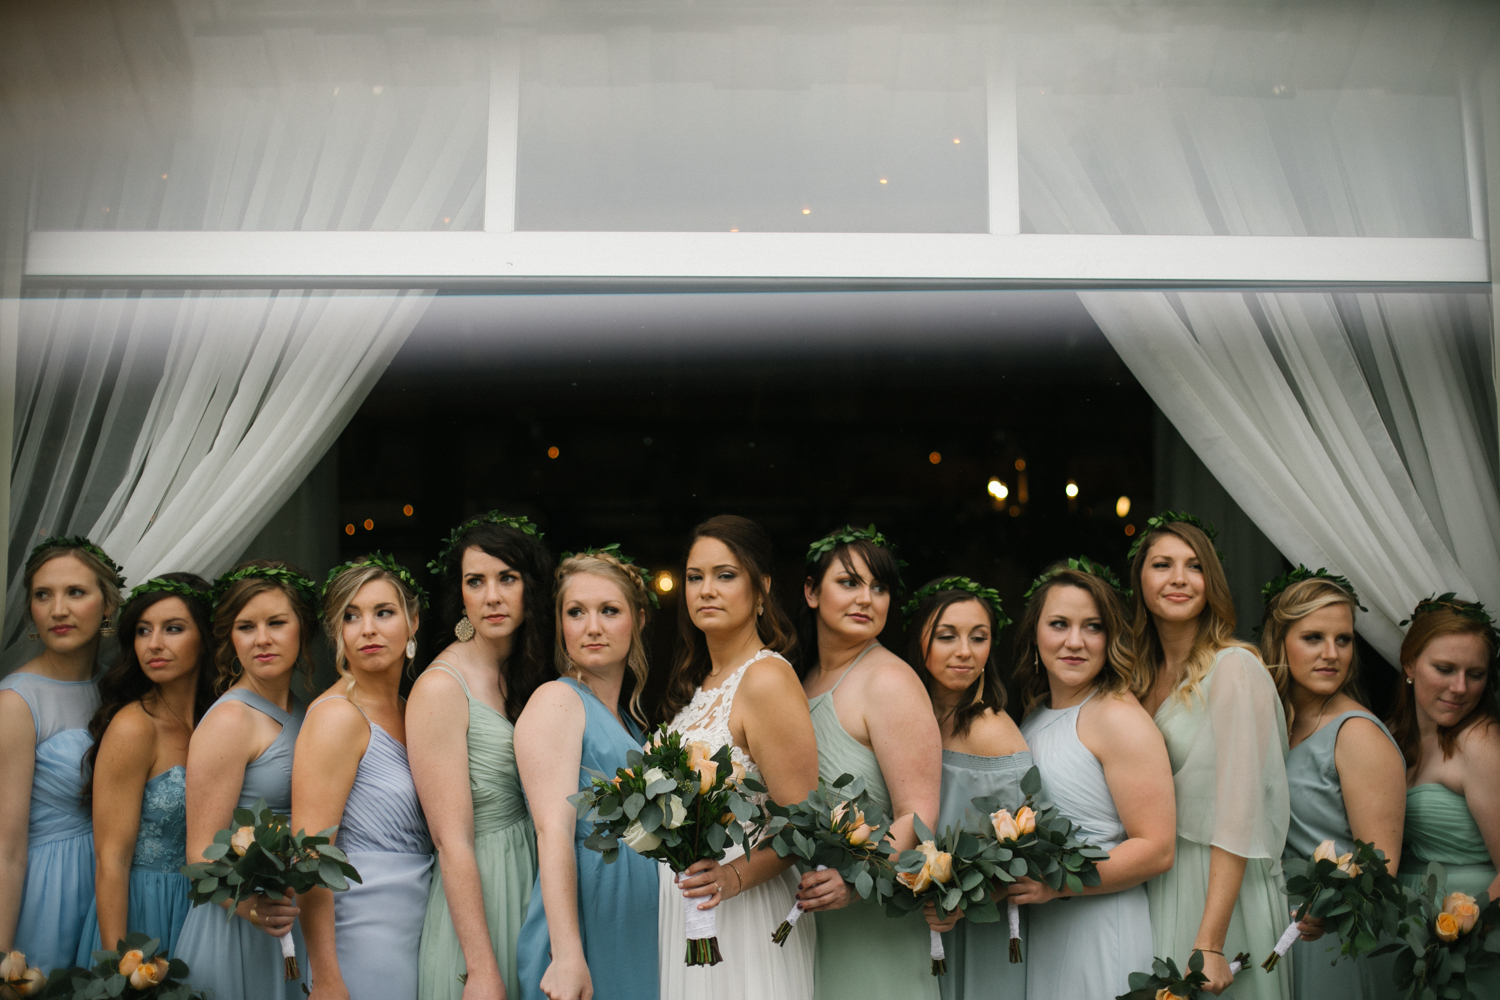 2018.05.05_SarahDillon_Wedding_Starks-0017.jpg